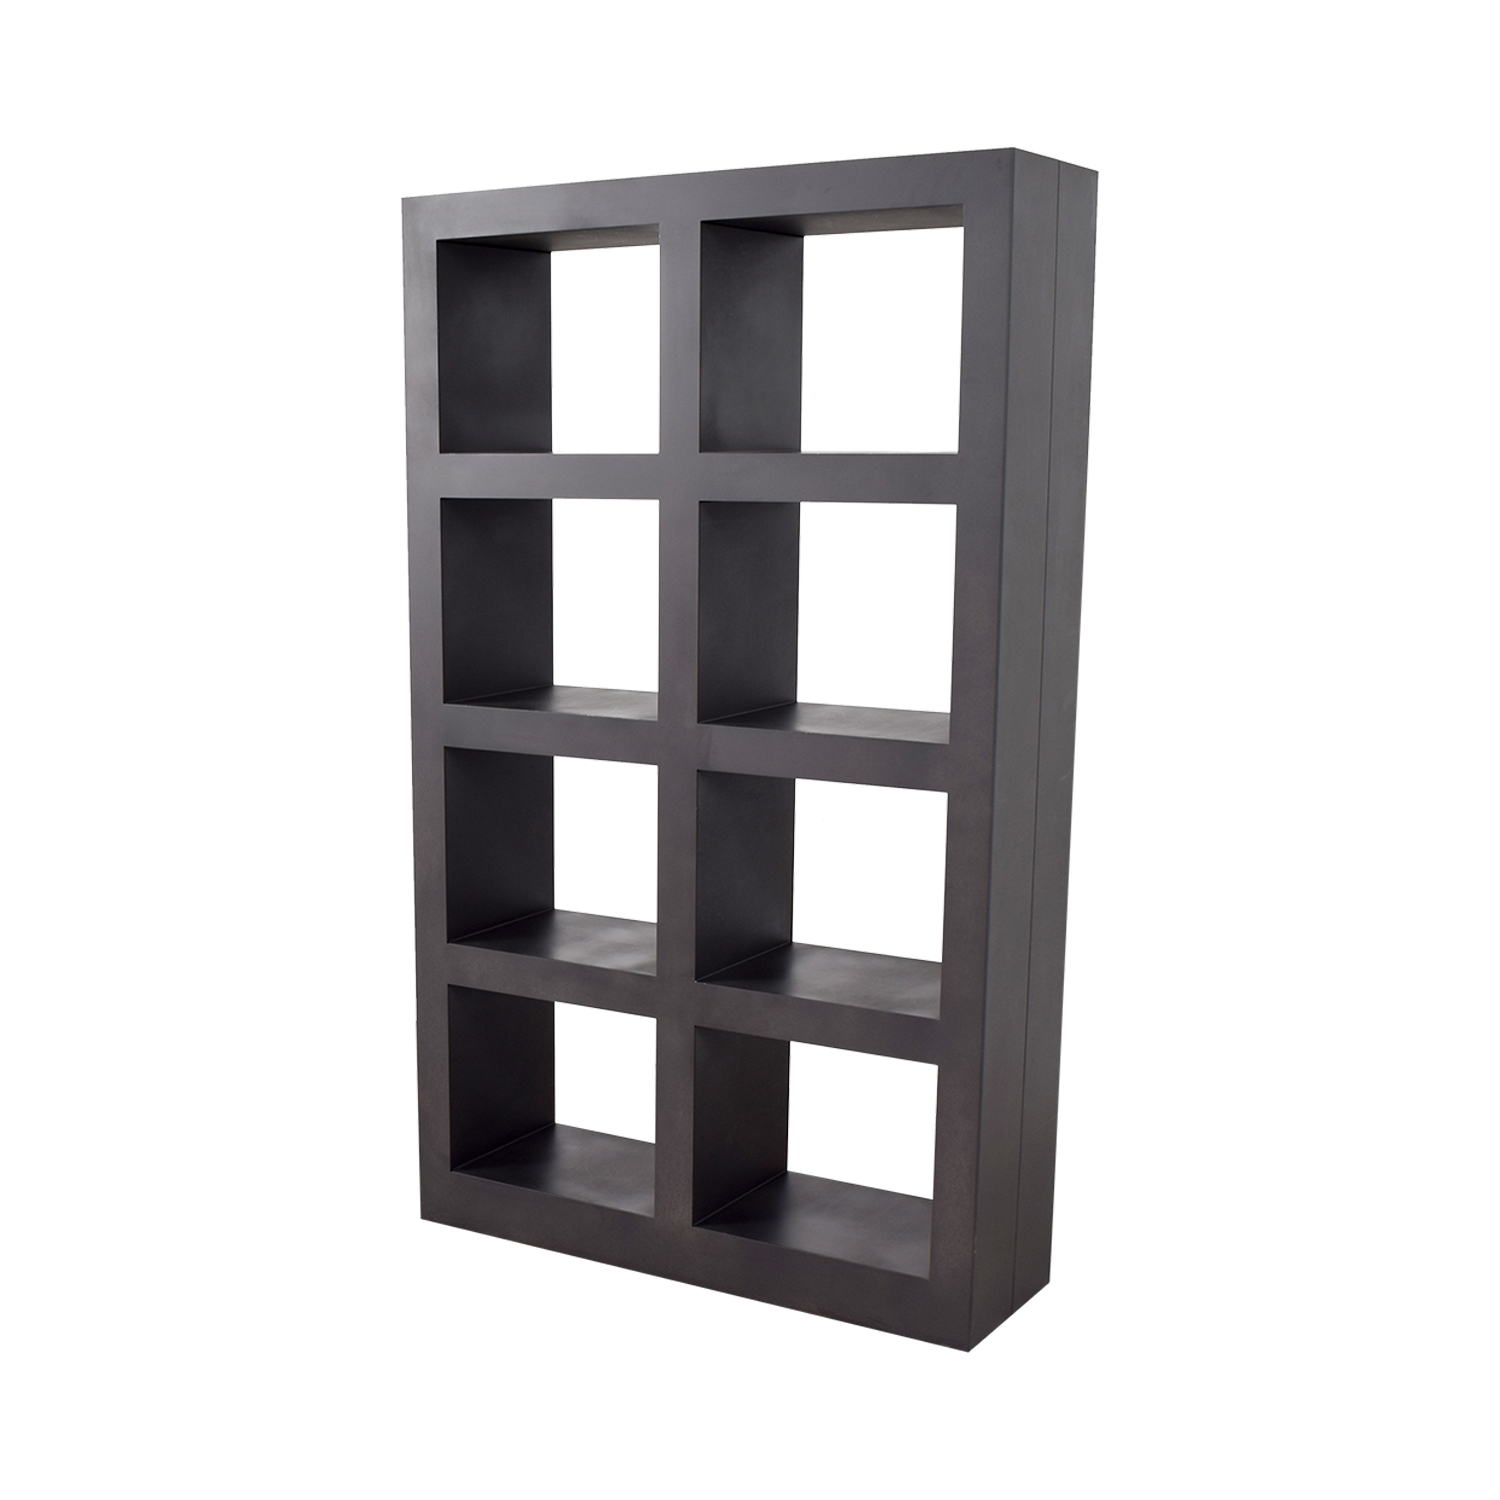 buy Crate & Barrel Shadow Box Bookcase Crate & Barrel